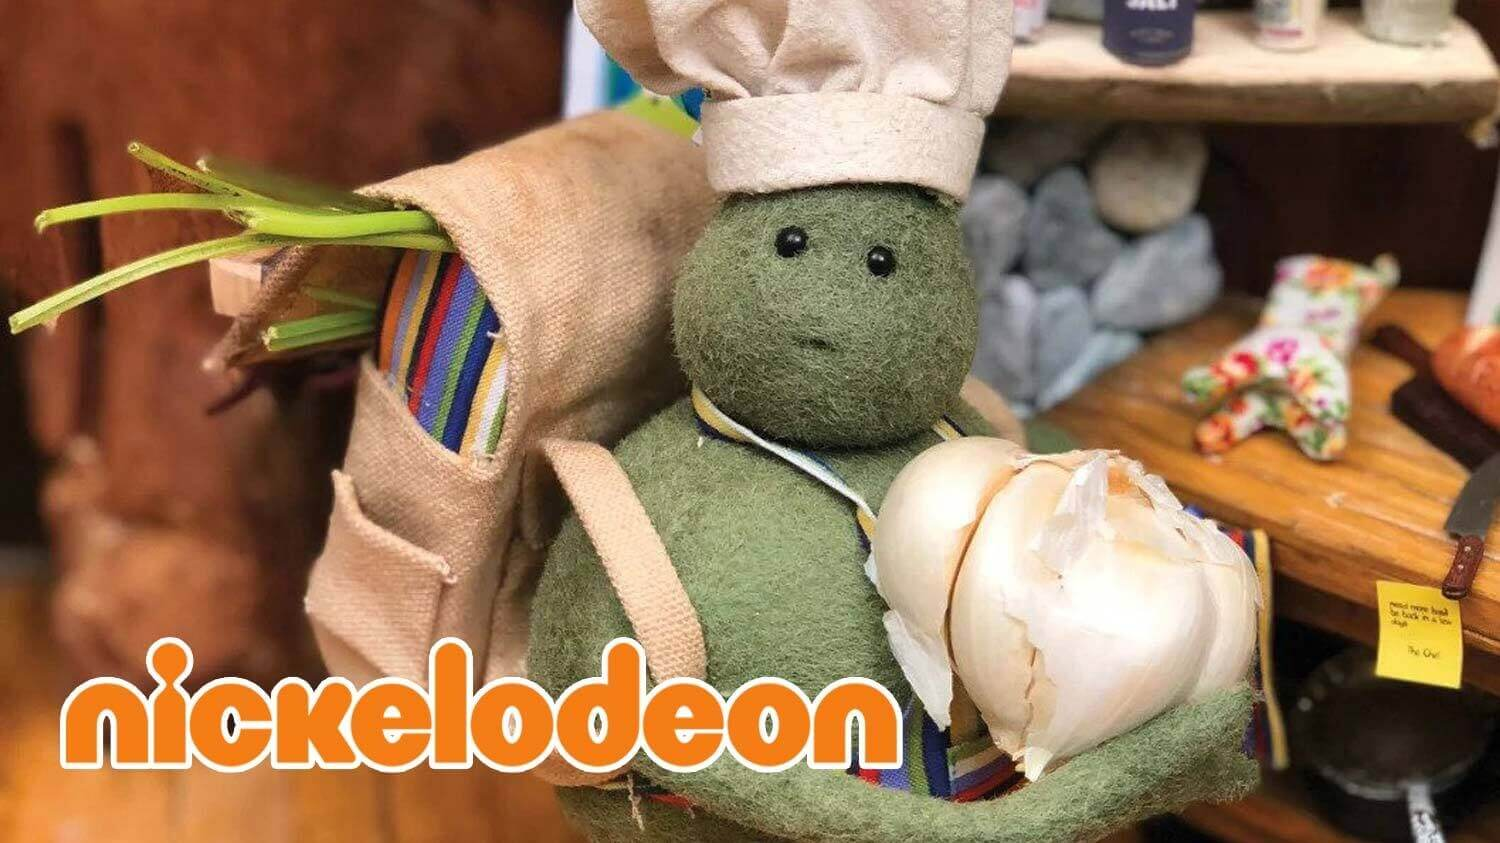 Vegan Social Media Star 'Tiny Chef' Just Got a Nickelodeon Show